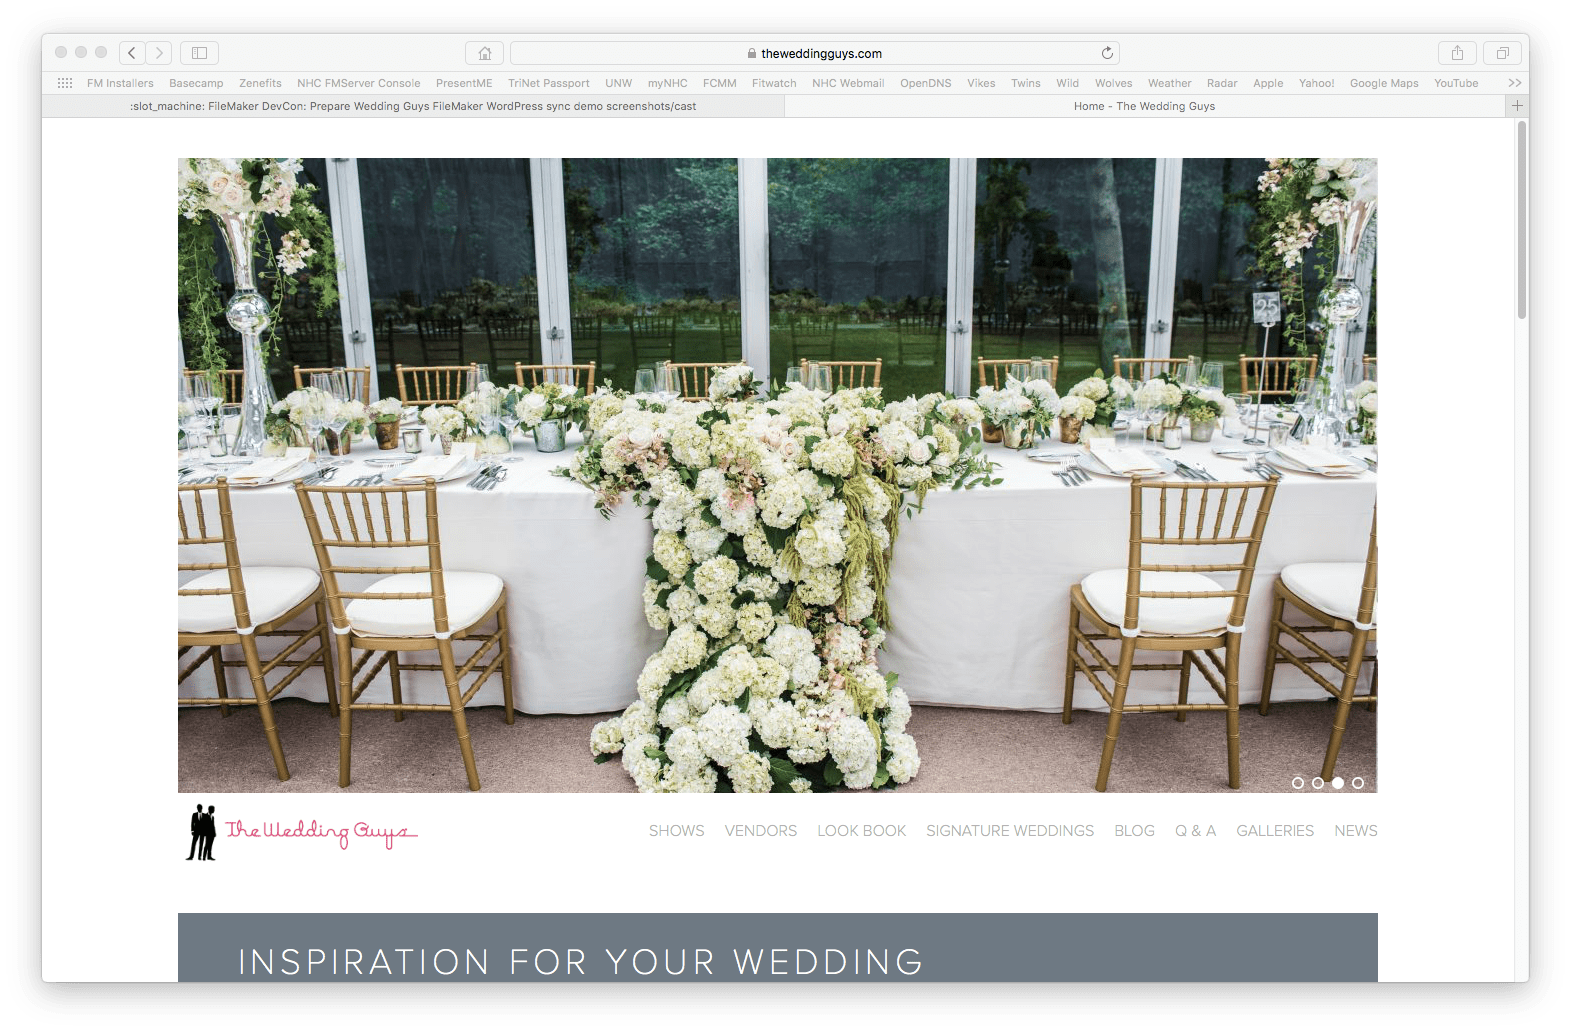 The Wedding Guys Dynamic Get a New Website with FileMaker Integration 3